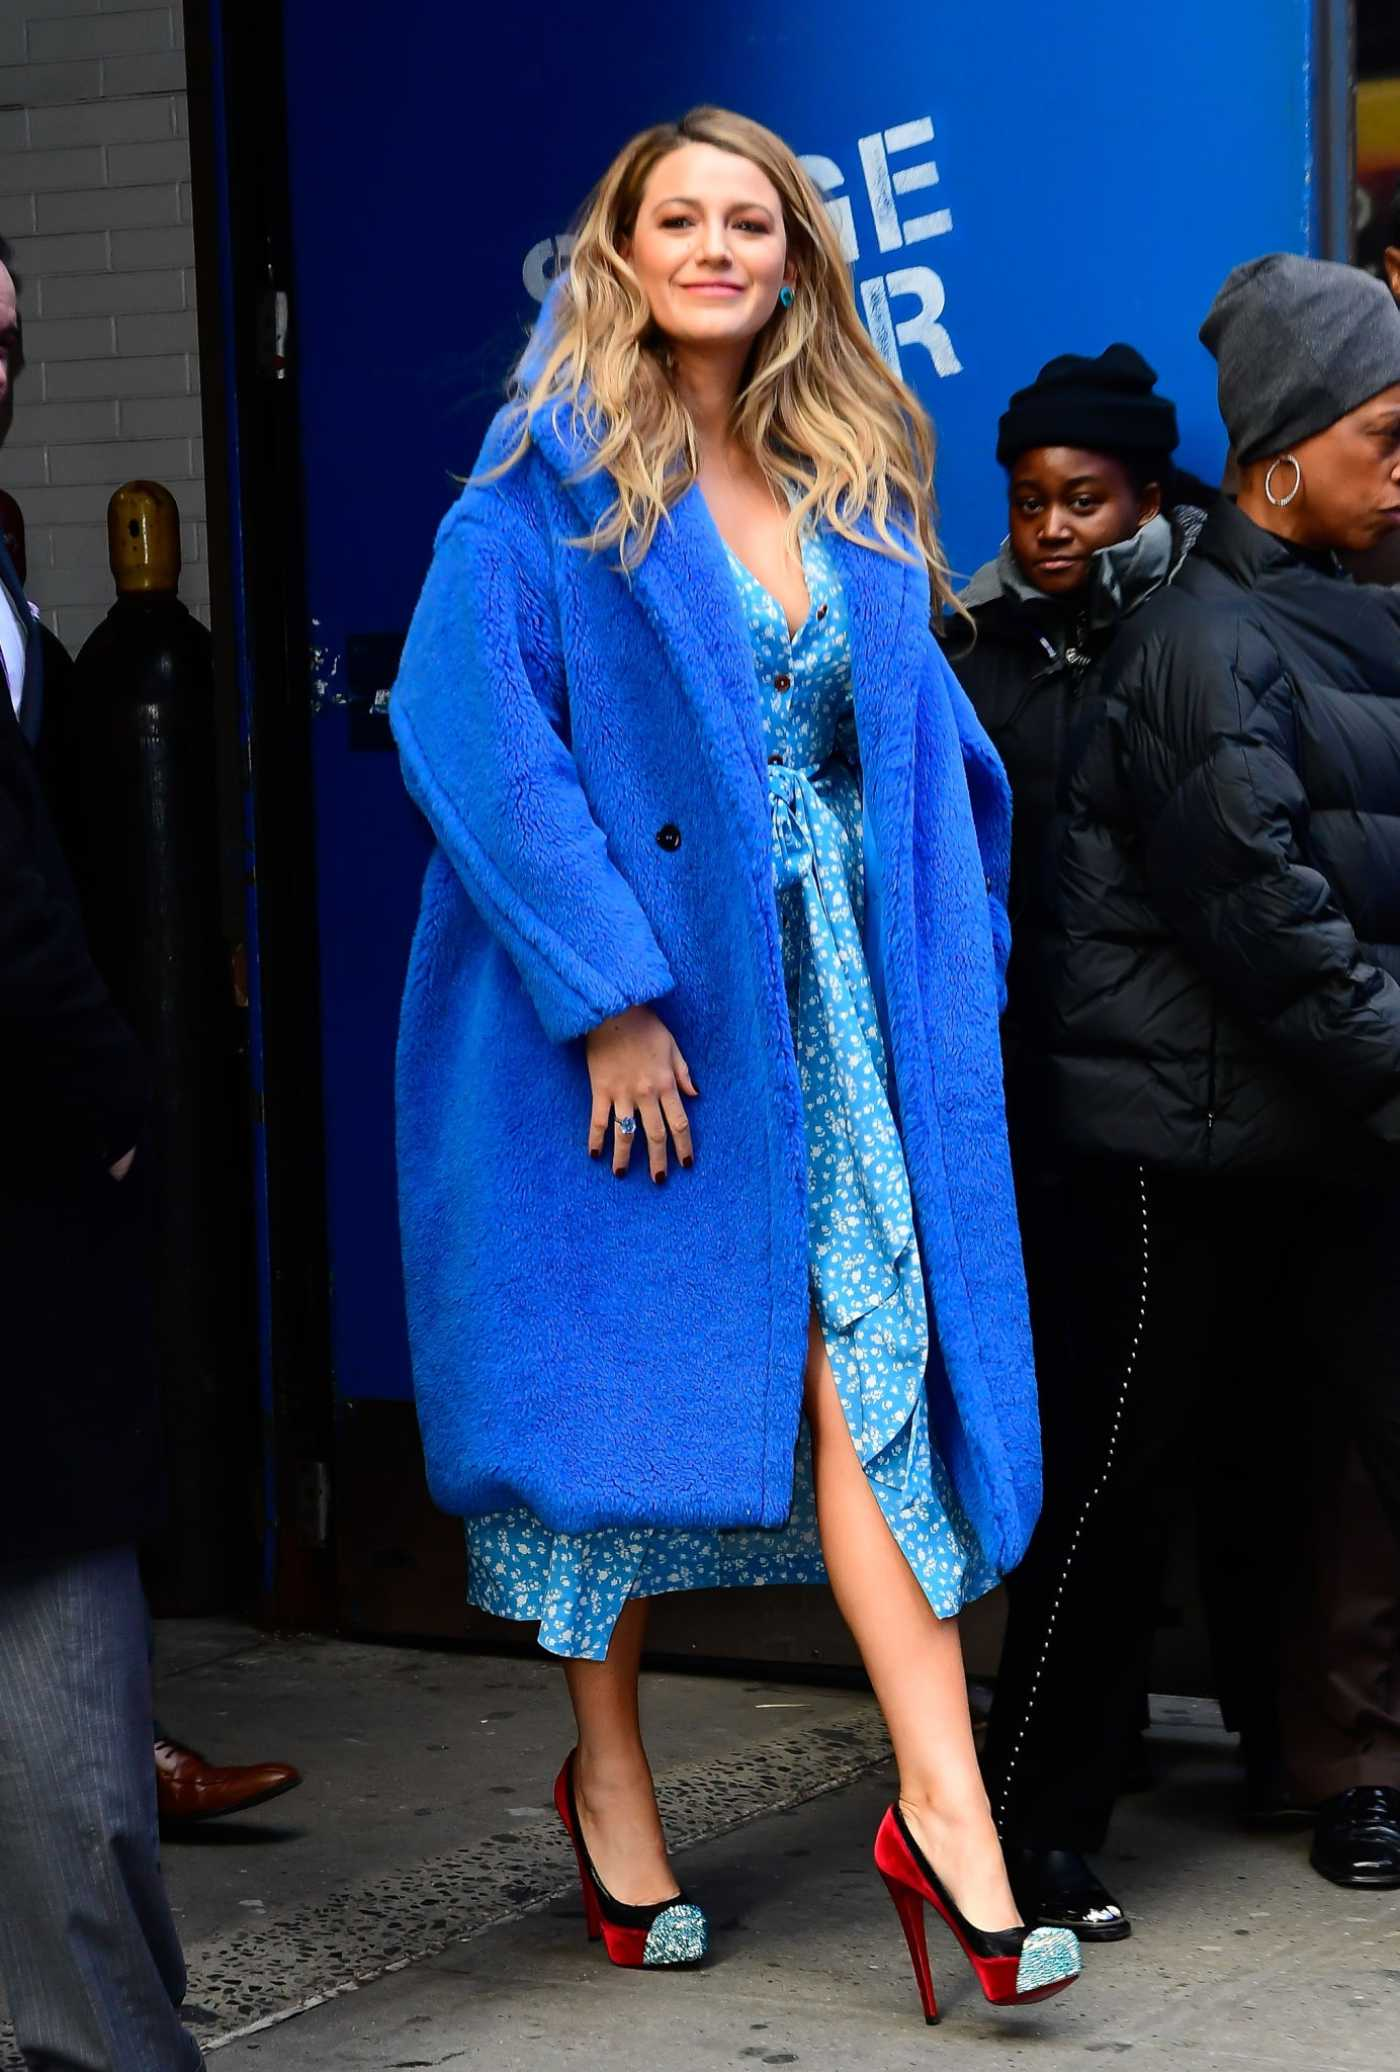 Blake Lively in a Blue Fur Coat Leaves Good Morning America in New York 01/28/2020